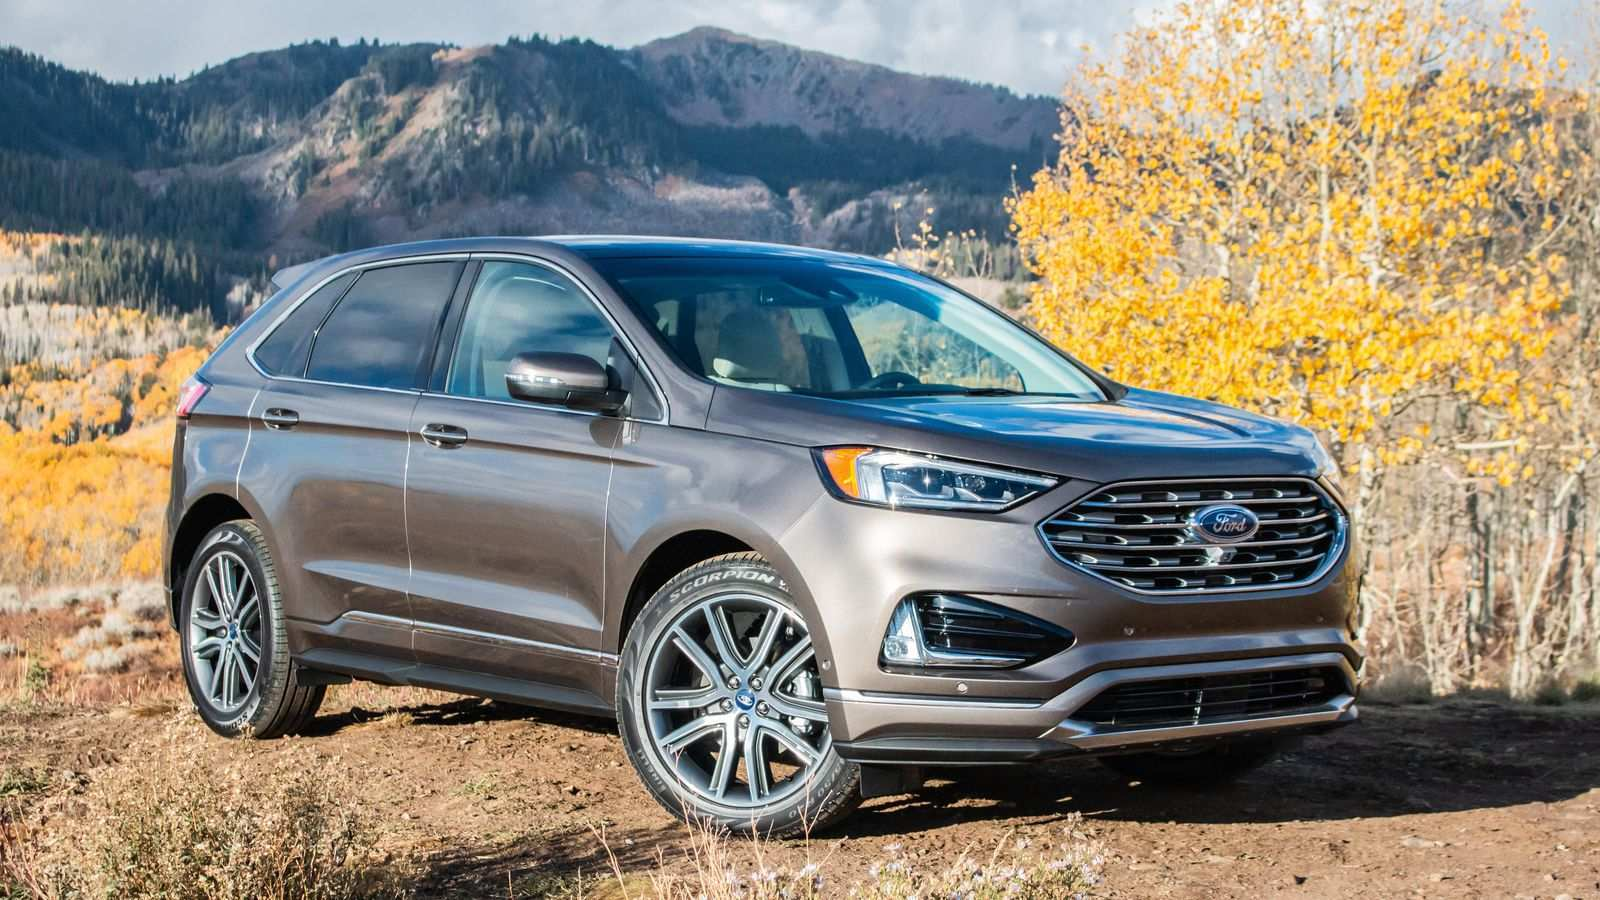 82 The 2019 Ford Edge New Design Price And Release Date